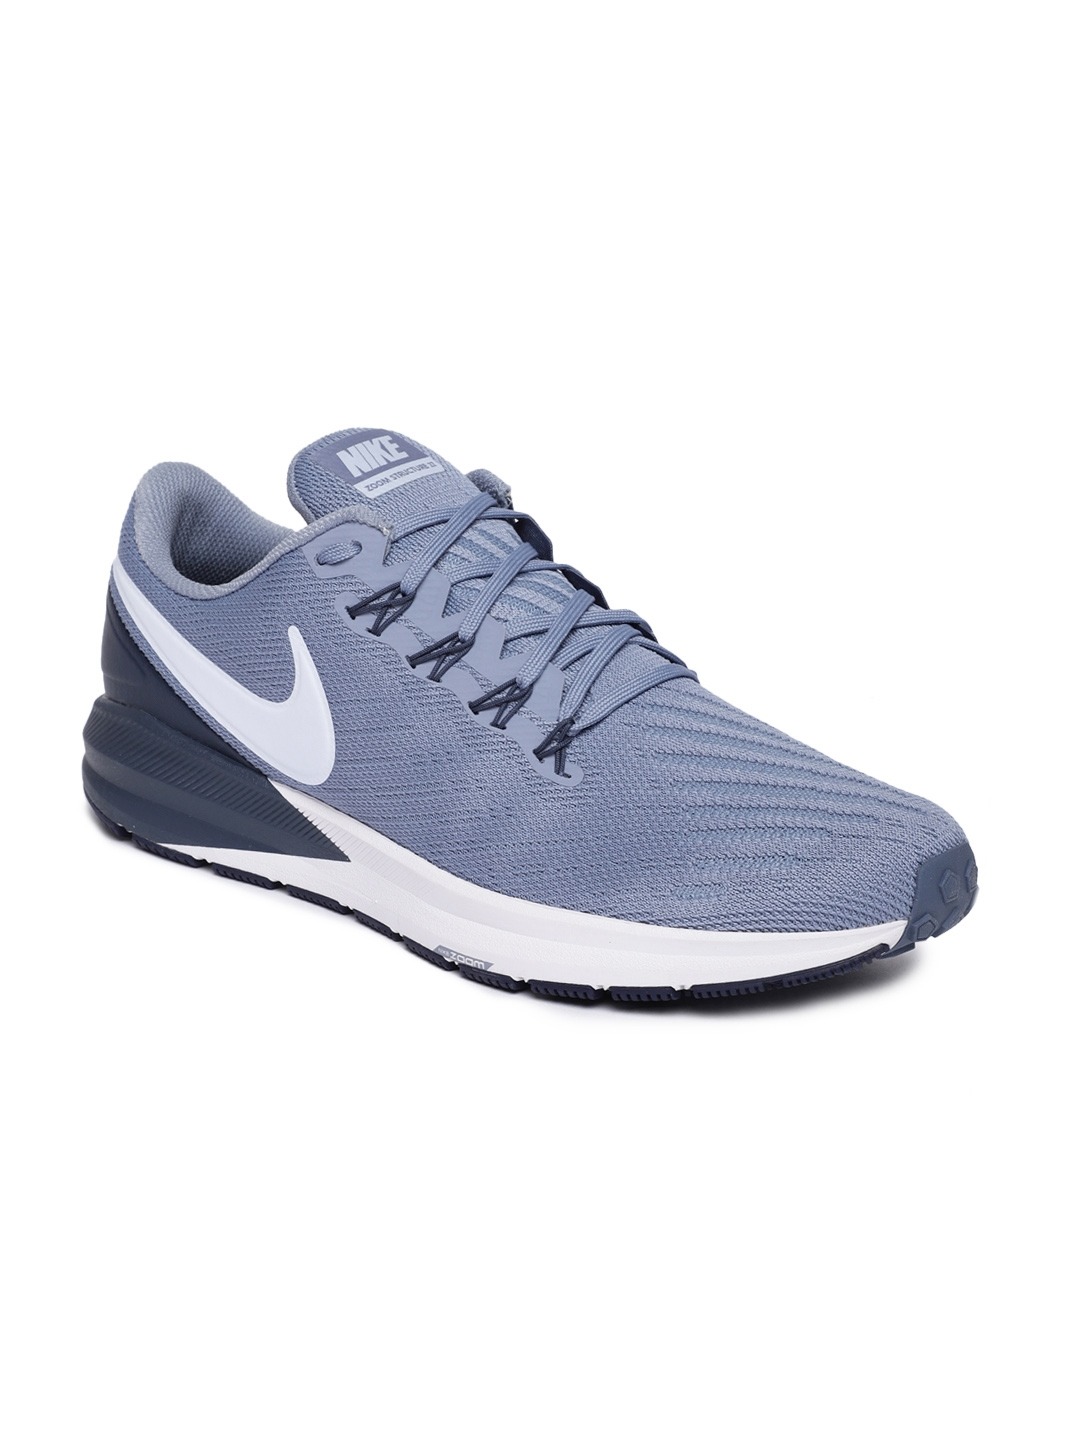 5225f300e404 Buy Nike Men Blue AIR ZOOM STRUCTURE 22 Running Shoes - Sports Shoes ...